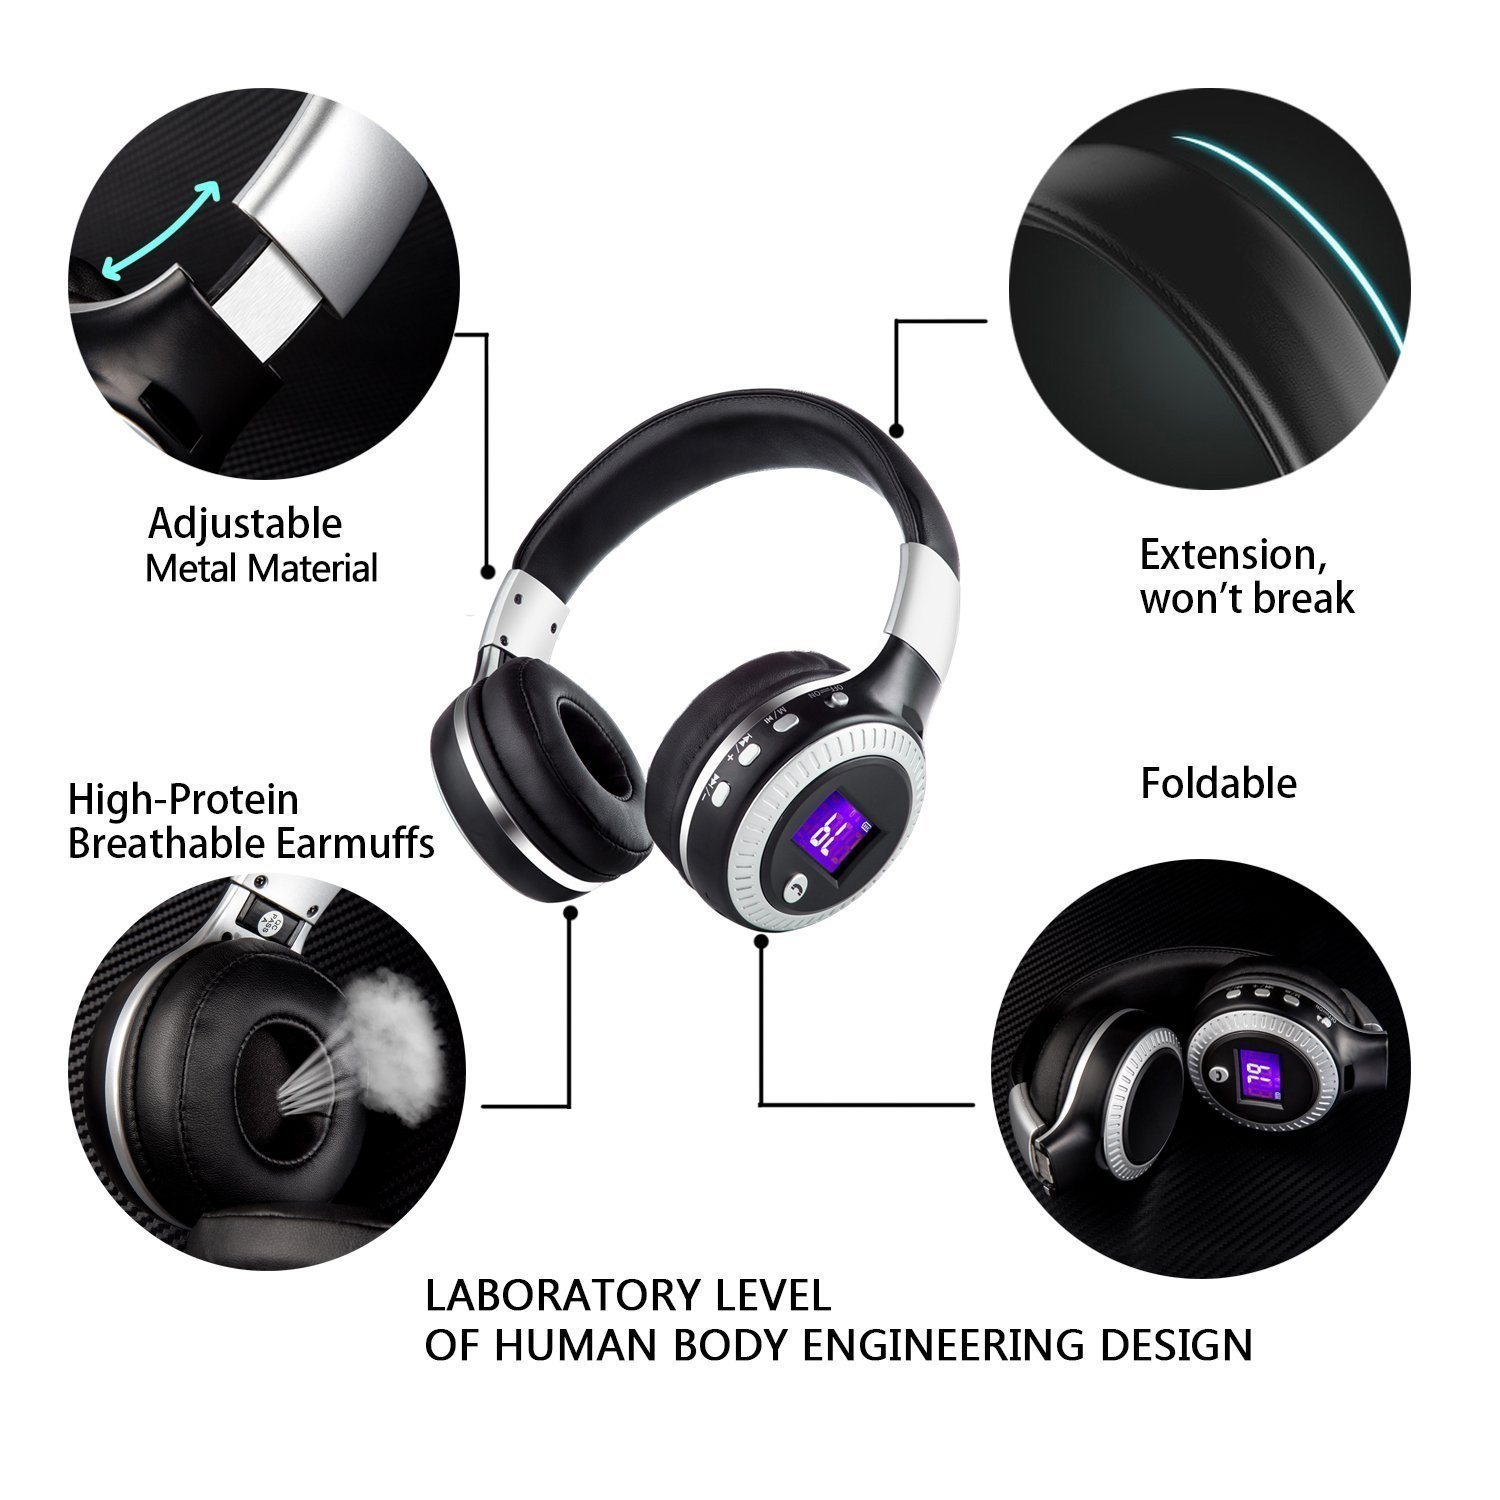 Bluetooth Over Ear Headphone,WONFAST LED Display Screen Foldable Wireless Headset HiFi Stereo Handsfree with Mic Support FM Radio TF Card for iPhone 8 7 Samsung//Laptop//PC Computer Black